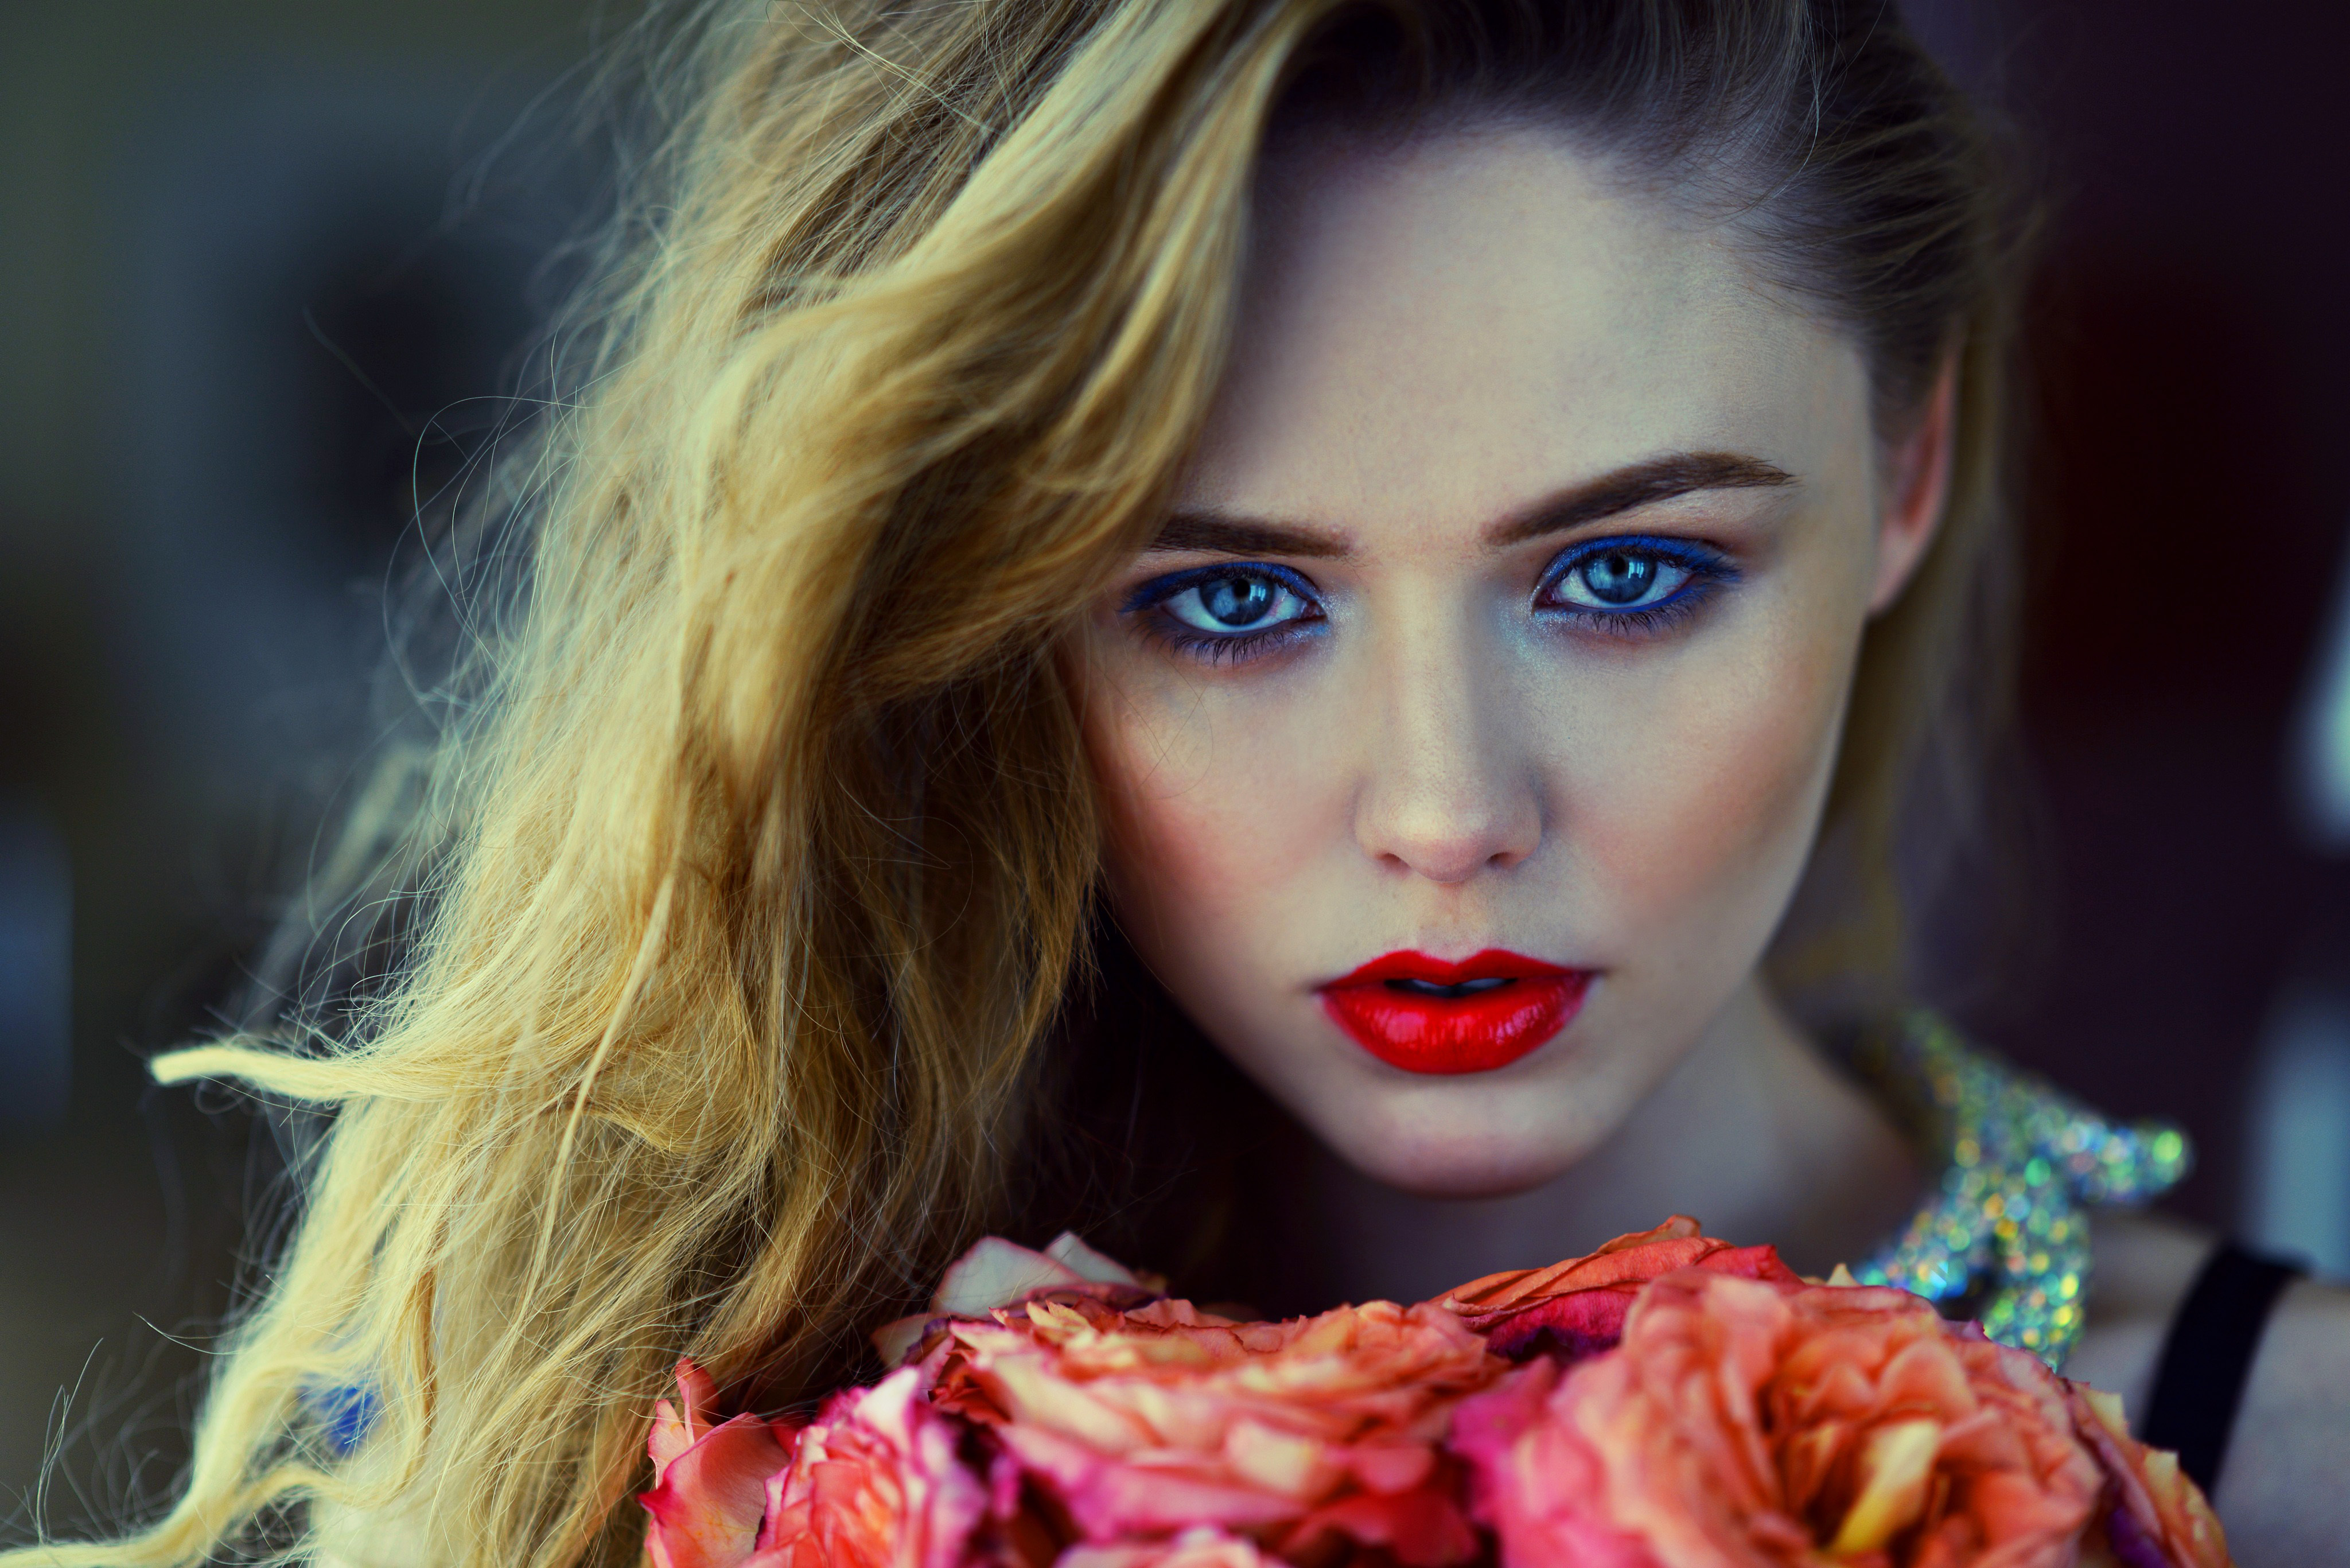 Kristina Bazan Wallpapers Images Photos Pictures Backgrounds